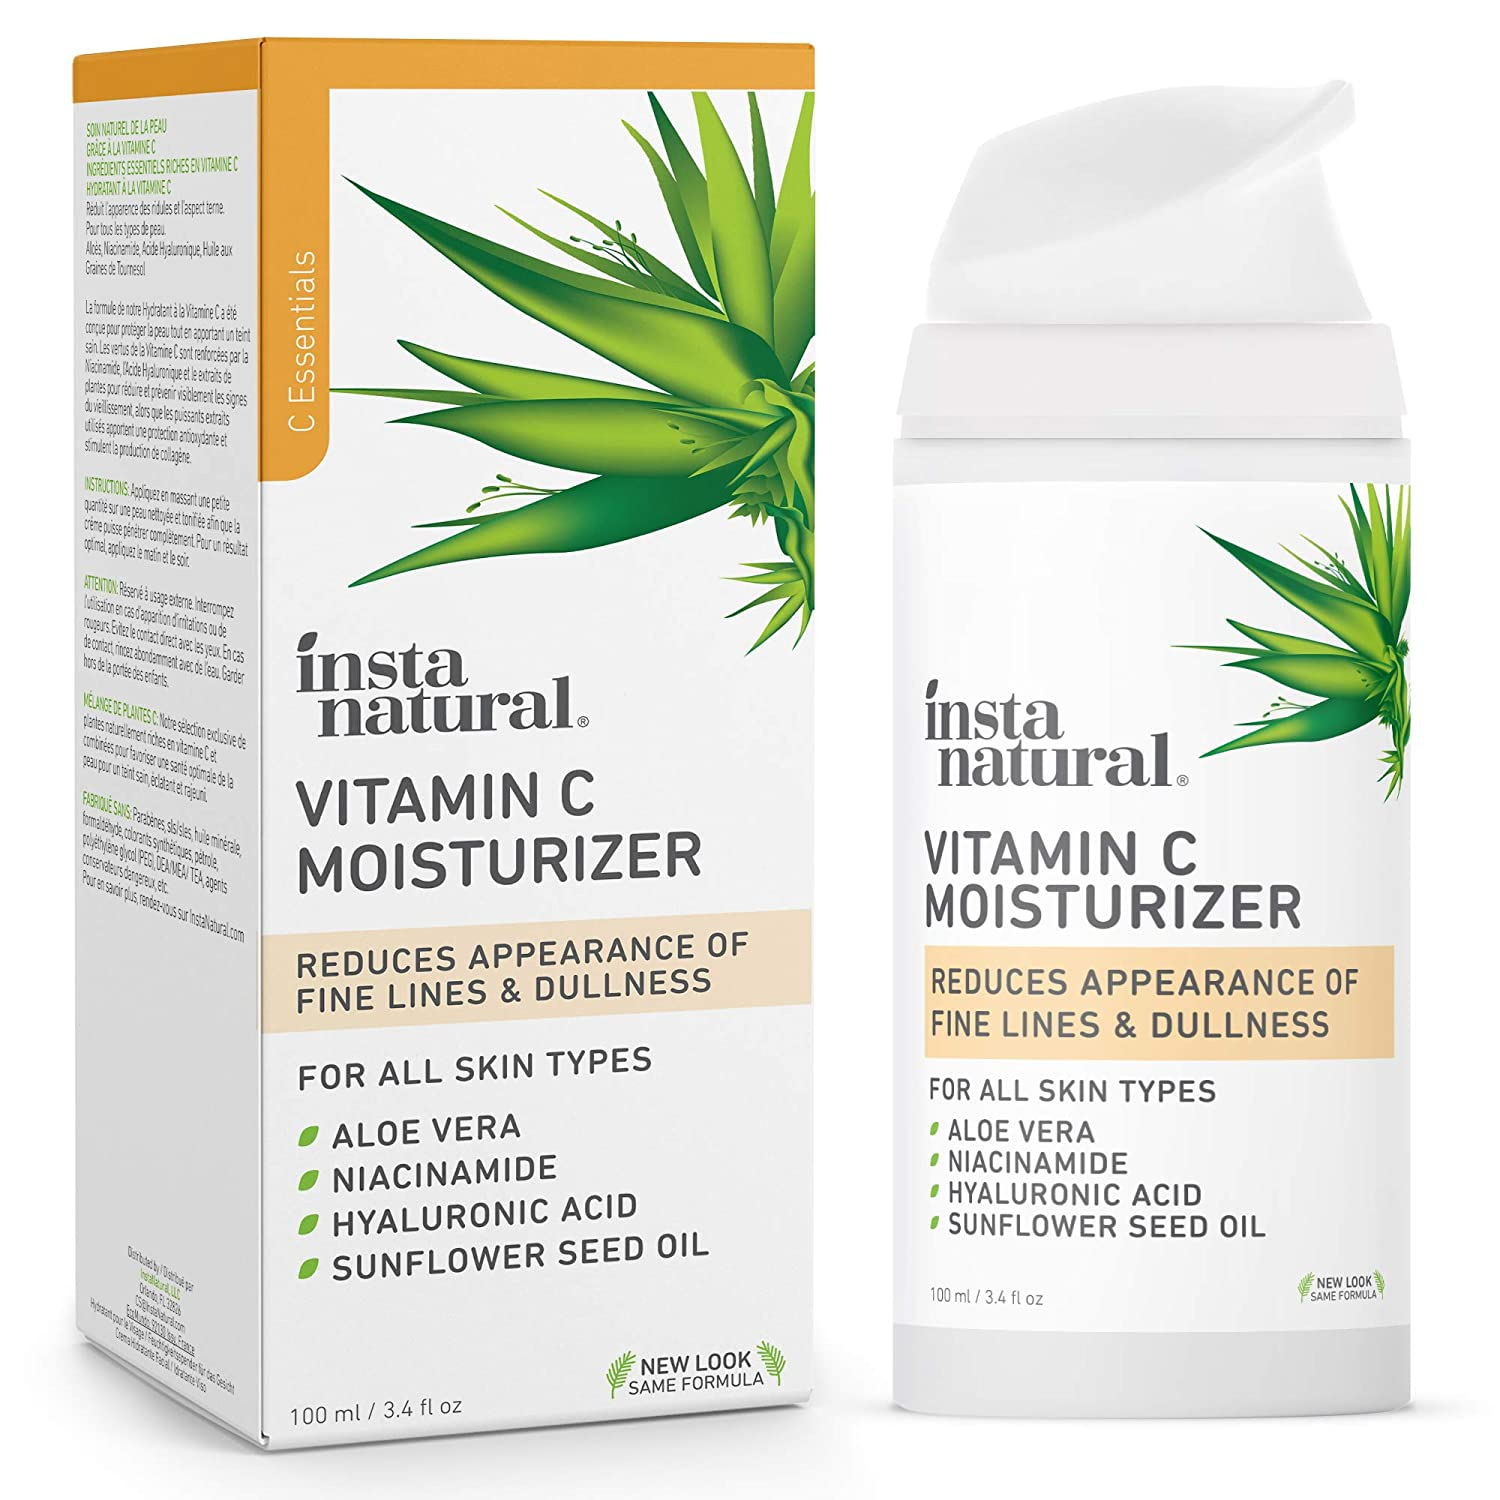 InstaNatural Vitamin C Moisturizer - Anti Aging & Wrinkle Cream - Hyaluronic Acid & Organic Jojoba Oil - Wrinkles, Hyperpigmentation, Acne, & Dark Spot Corrector for Face - Men & Women - 3.4oz: Beauty